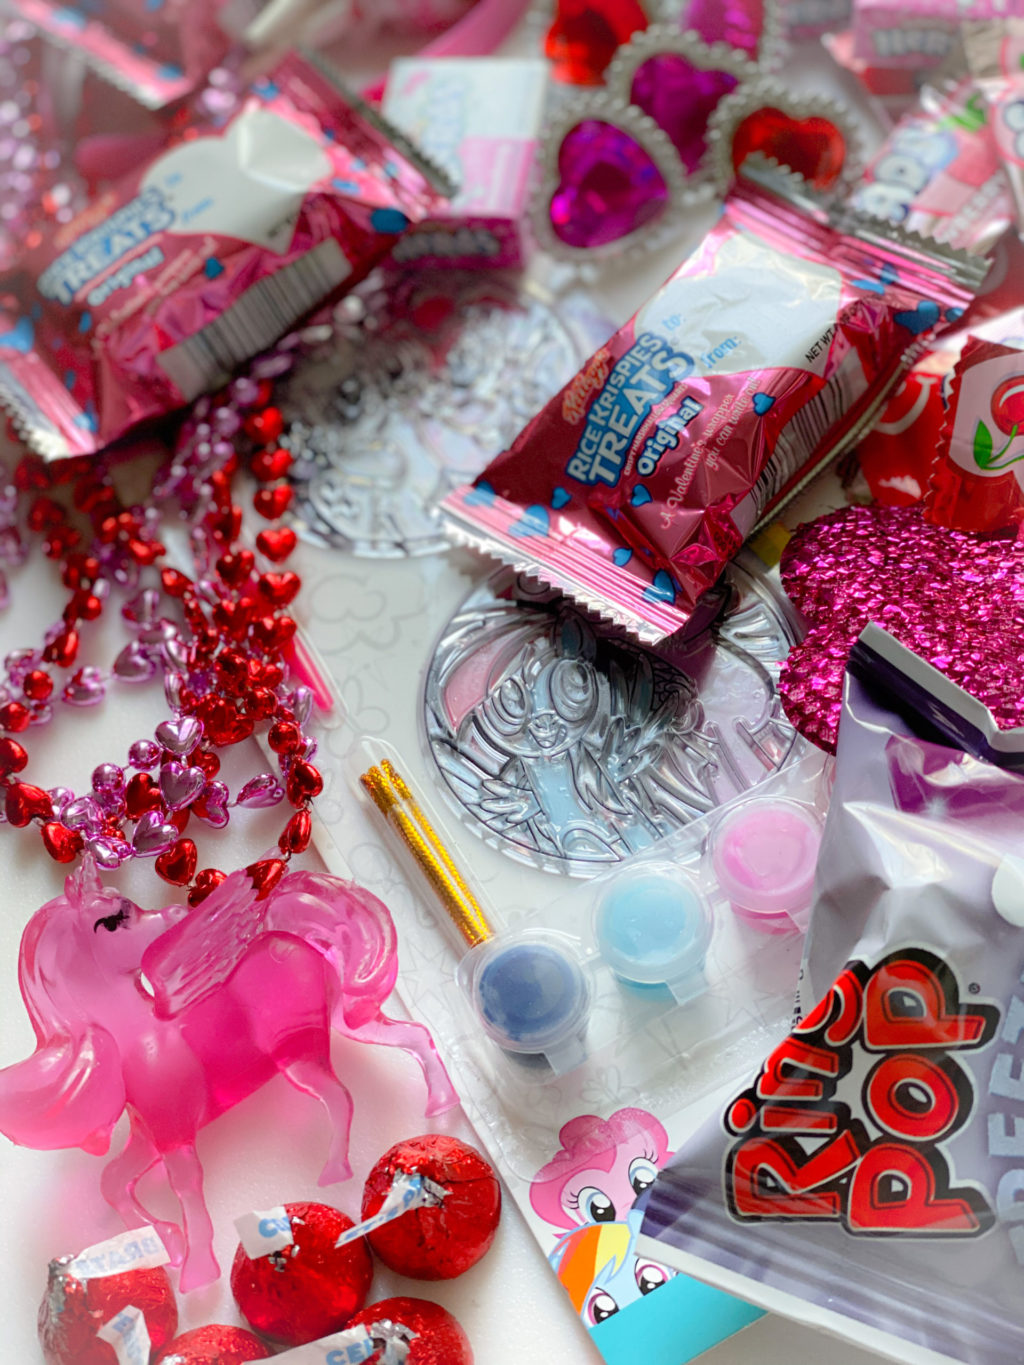 paint kit, beads and ring pops for goody bags